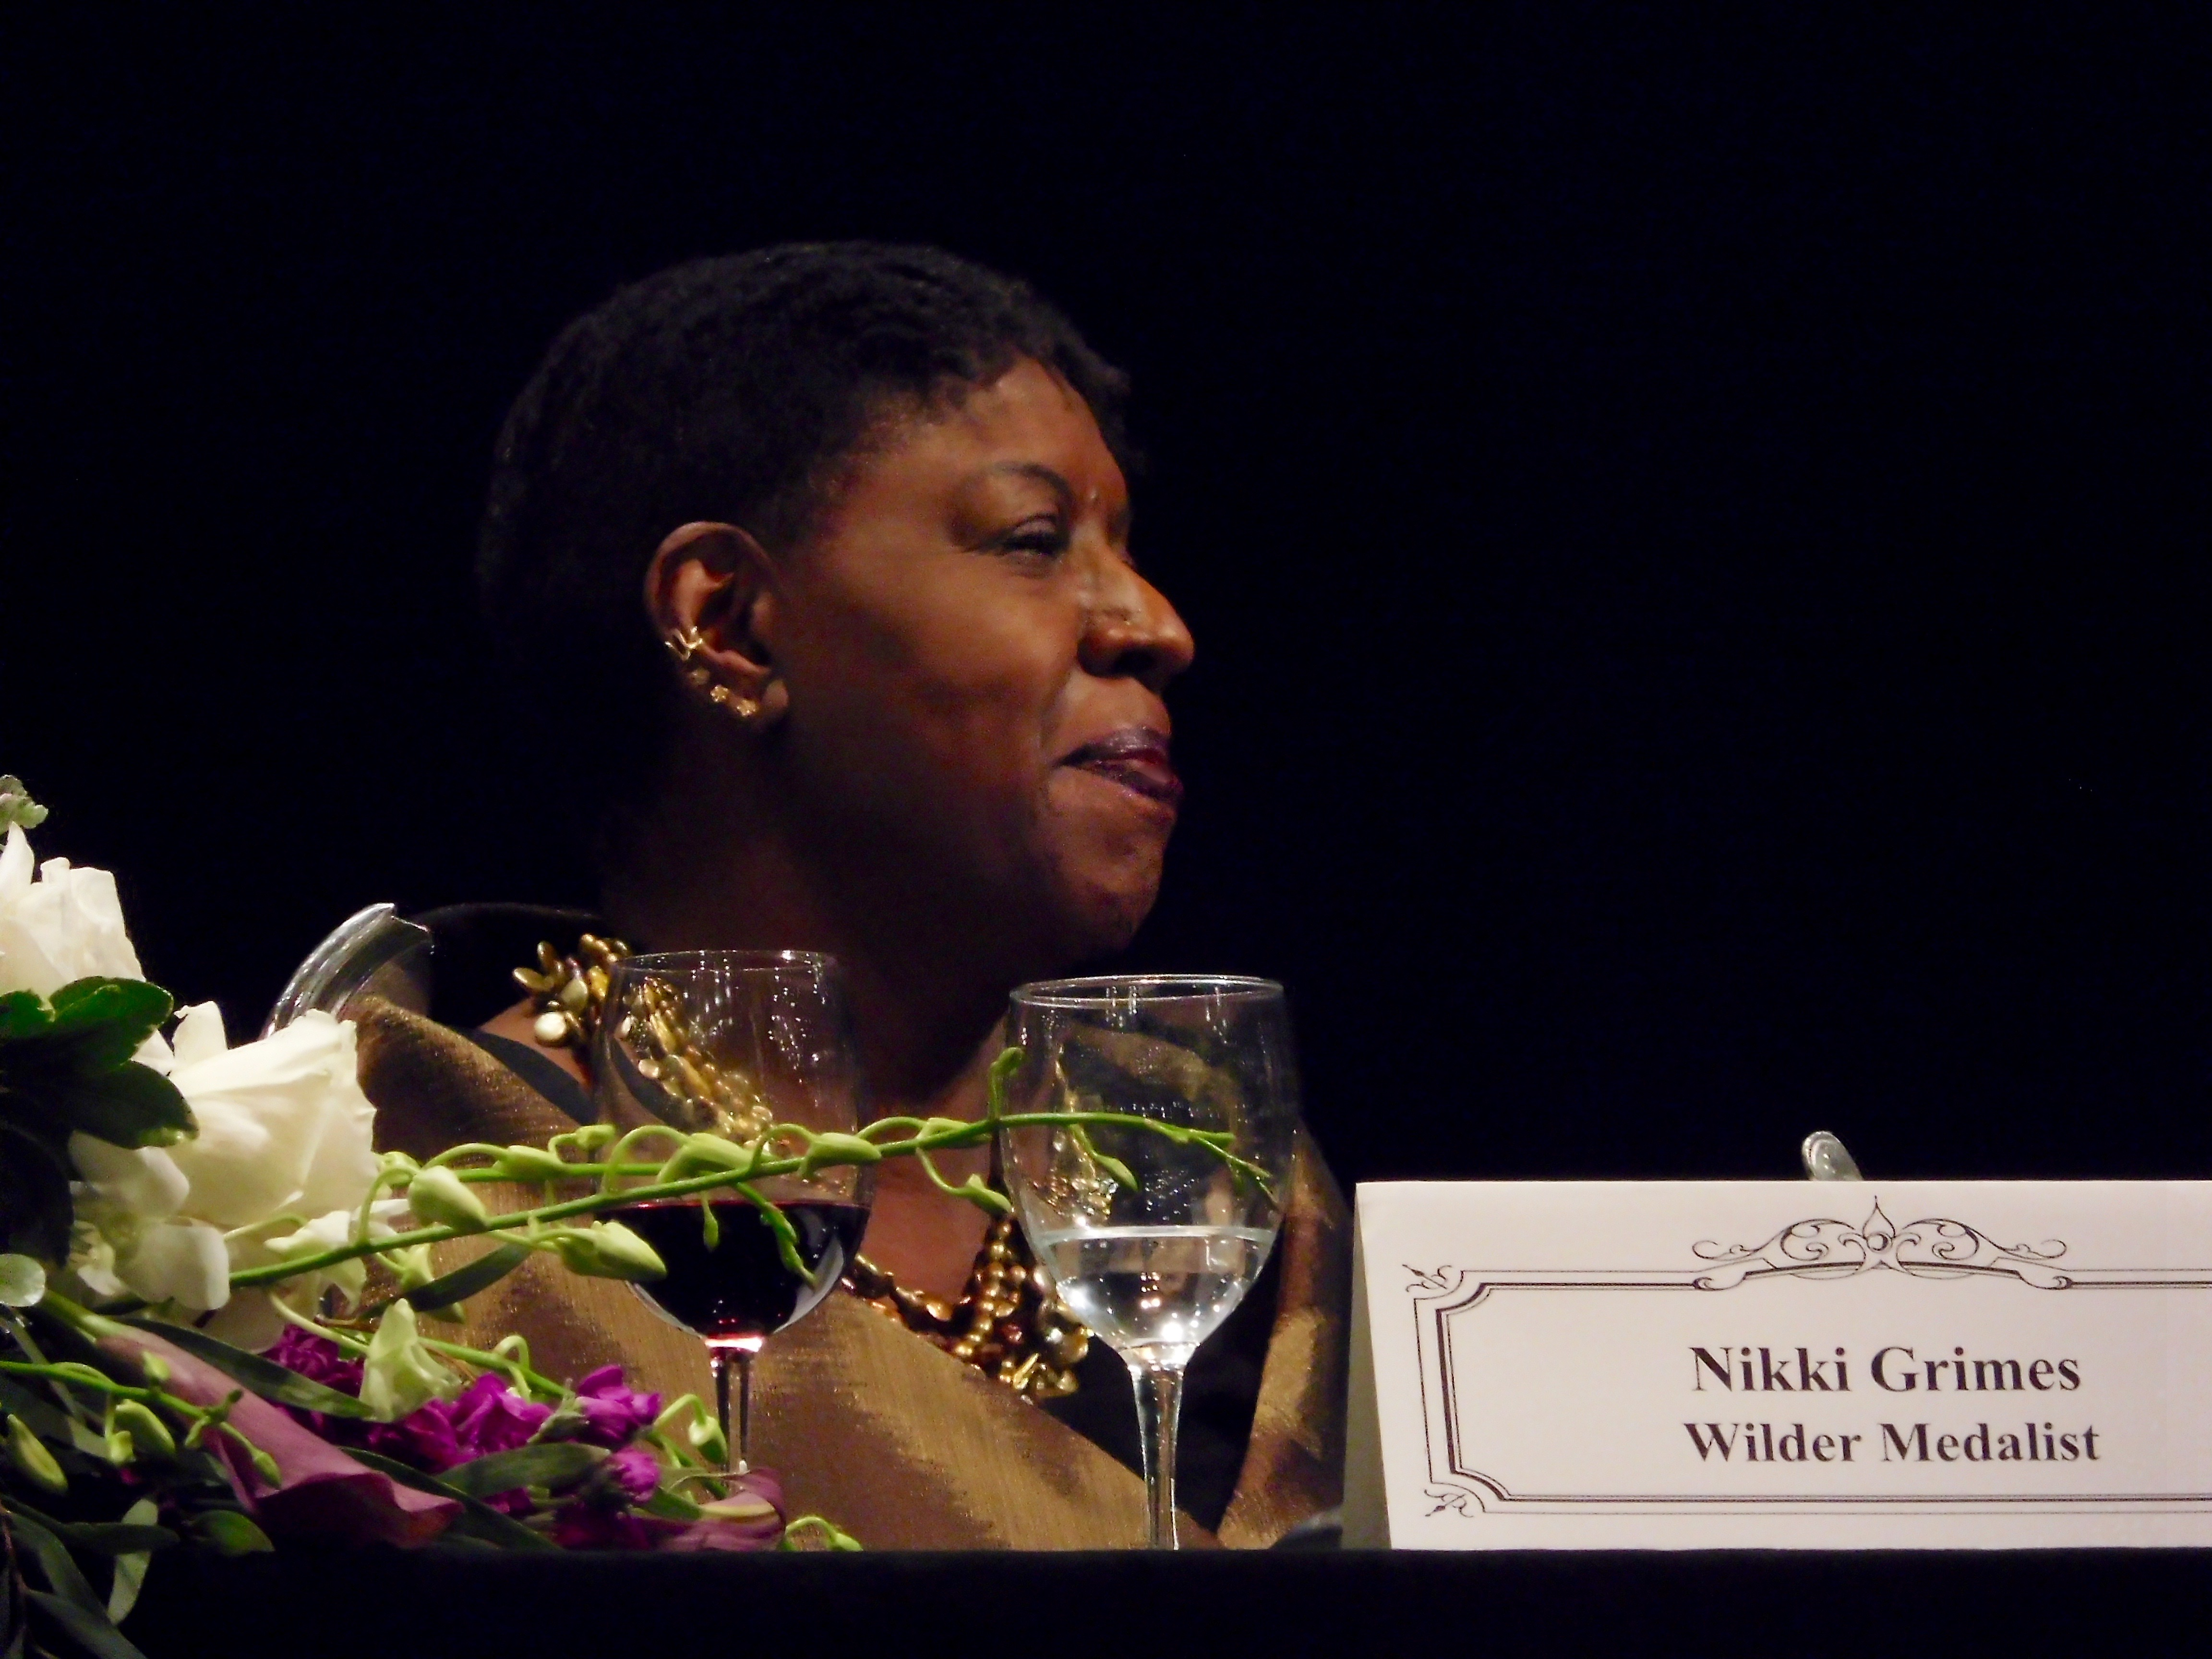 Nikki at Wilder Awards Ceremony